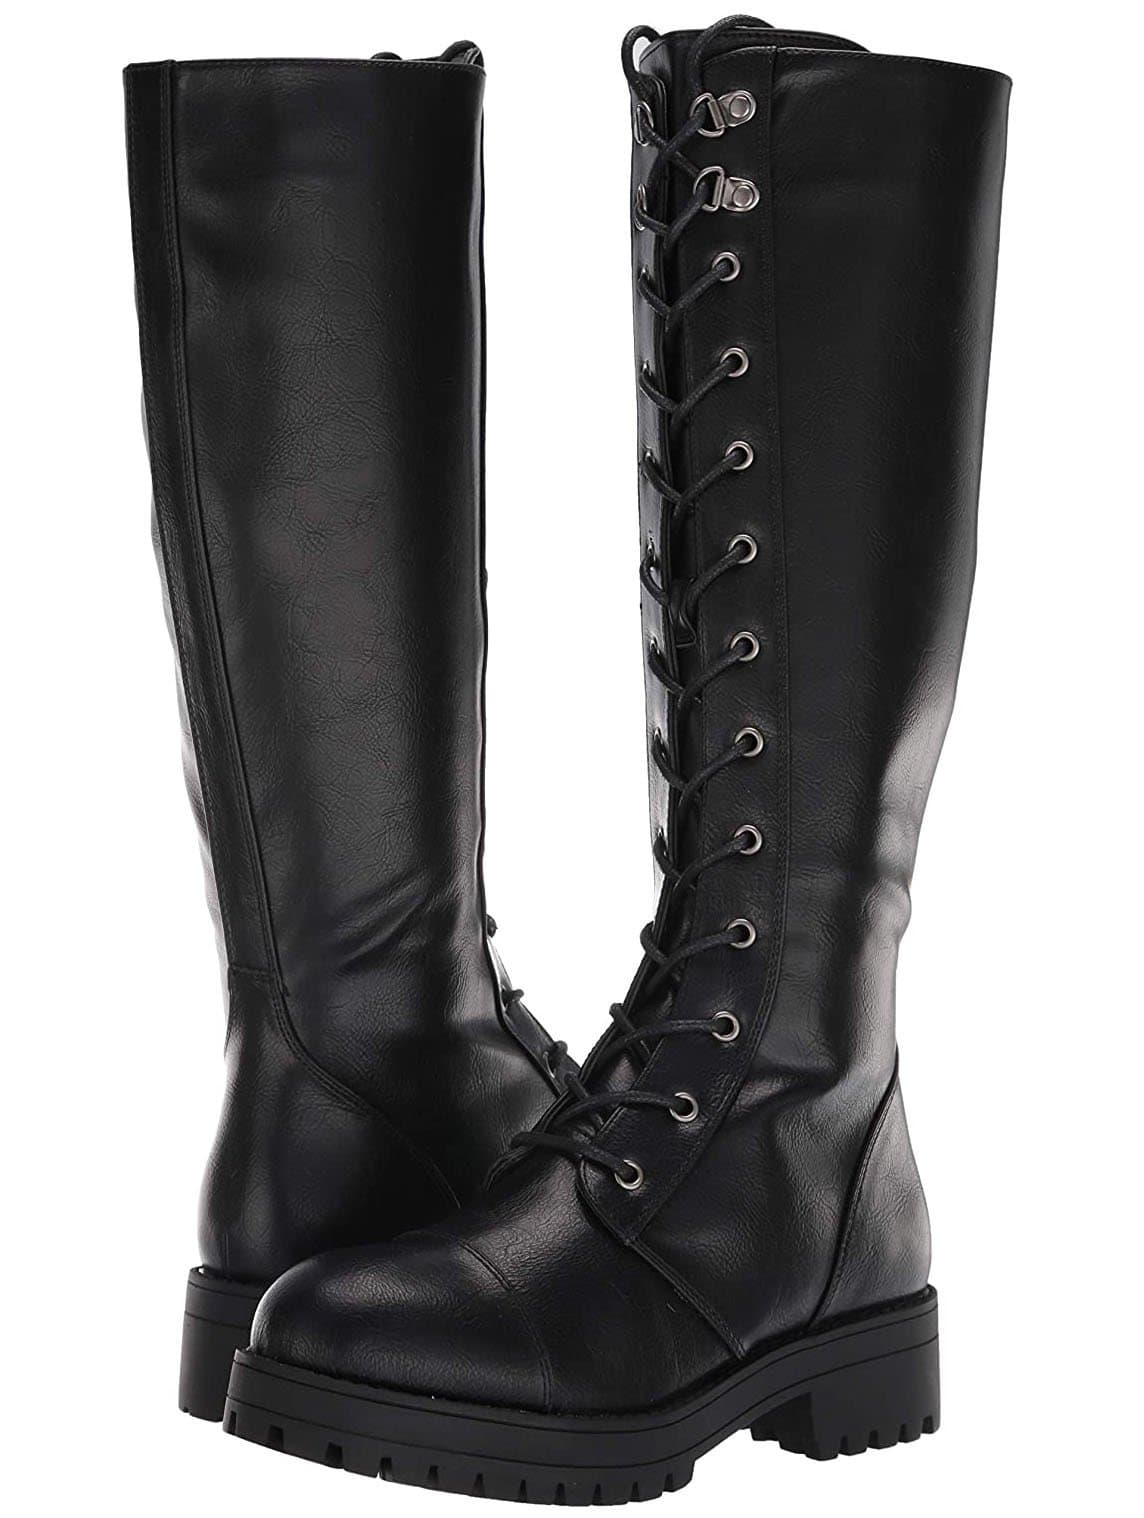 Dirty Laundry's Vandal is both tough and sexy, thanks to its knee-high combat boot silhouette